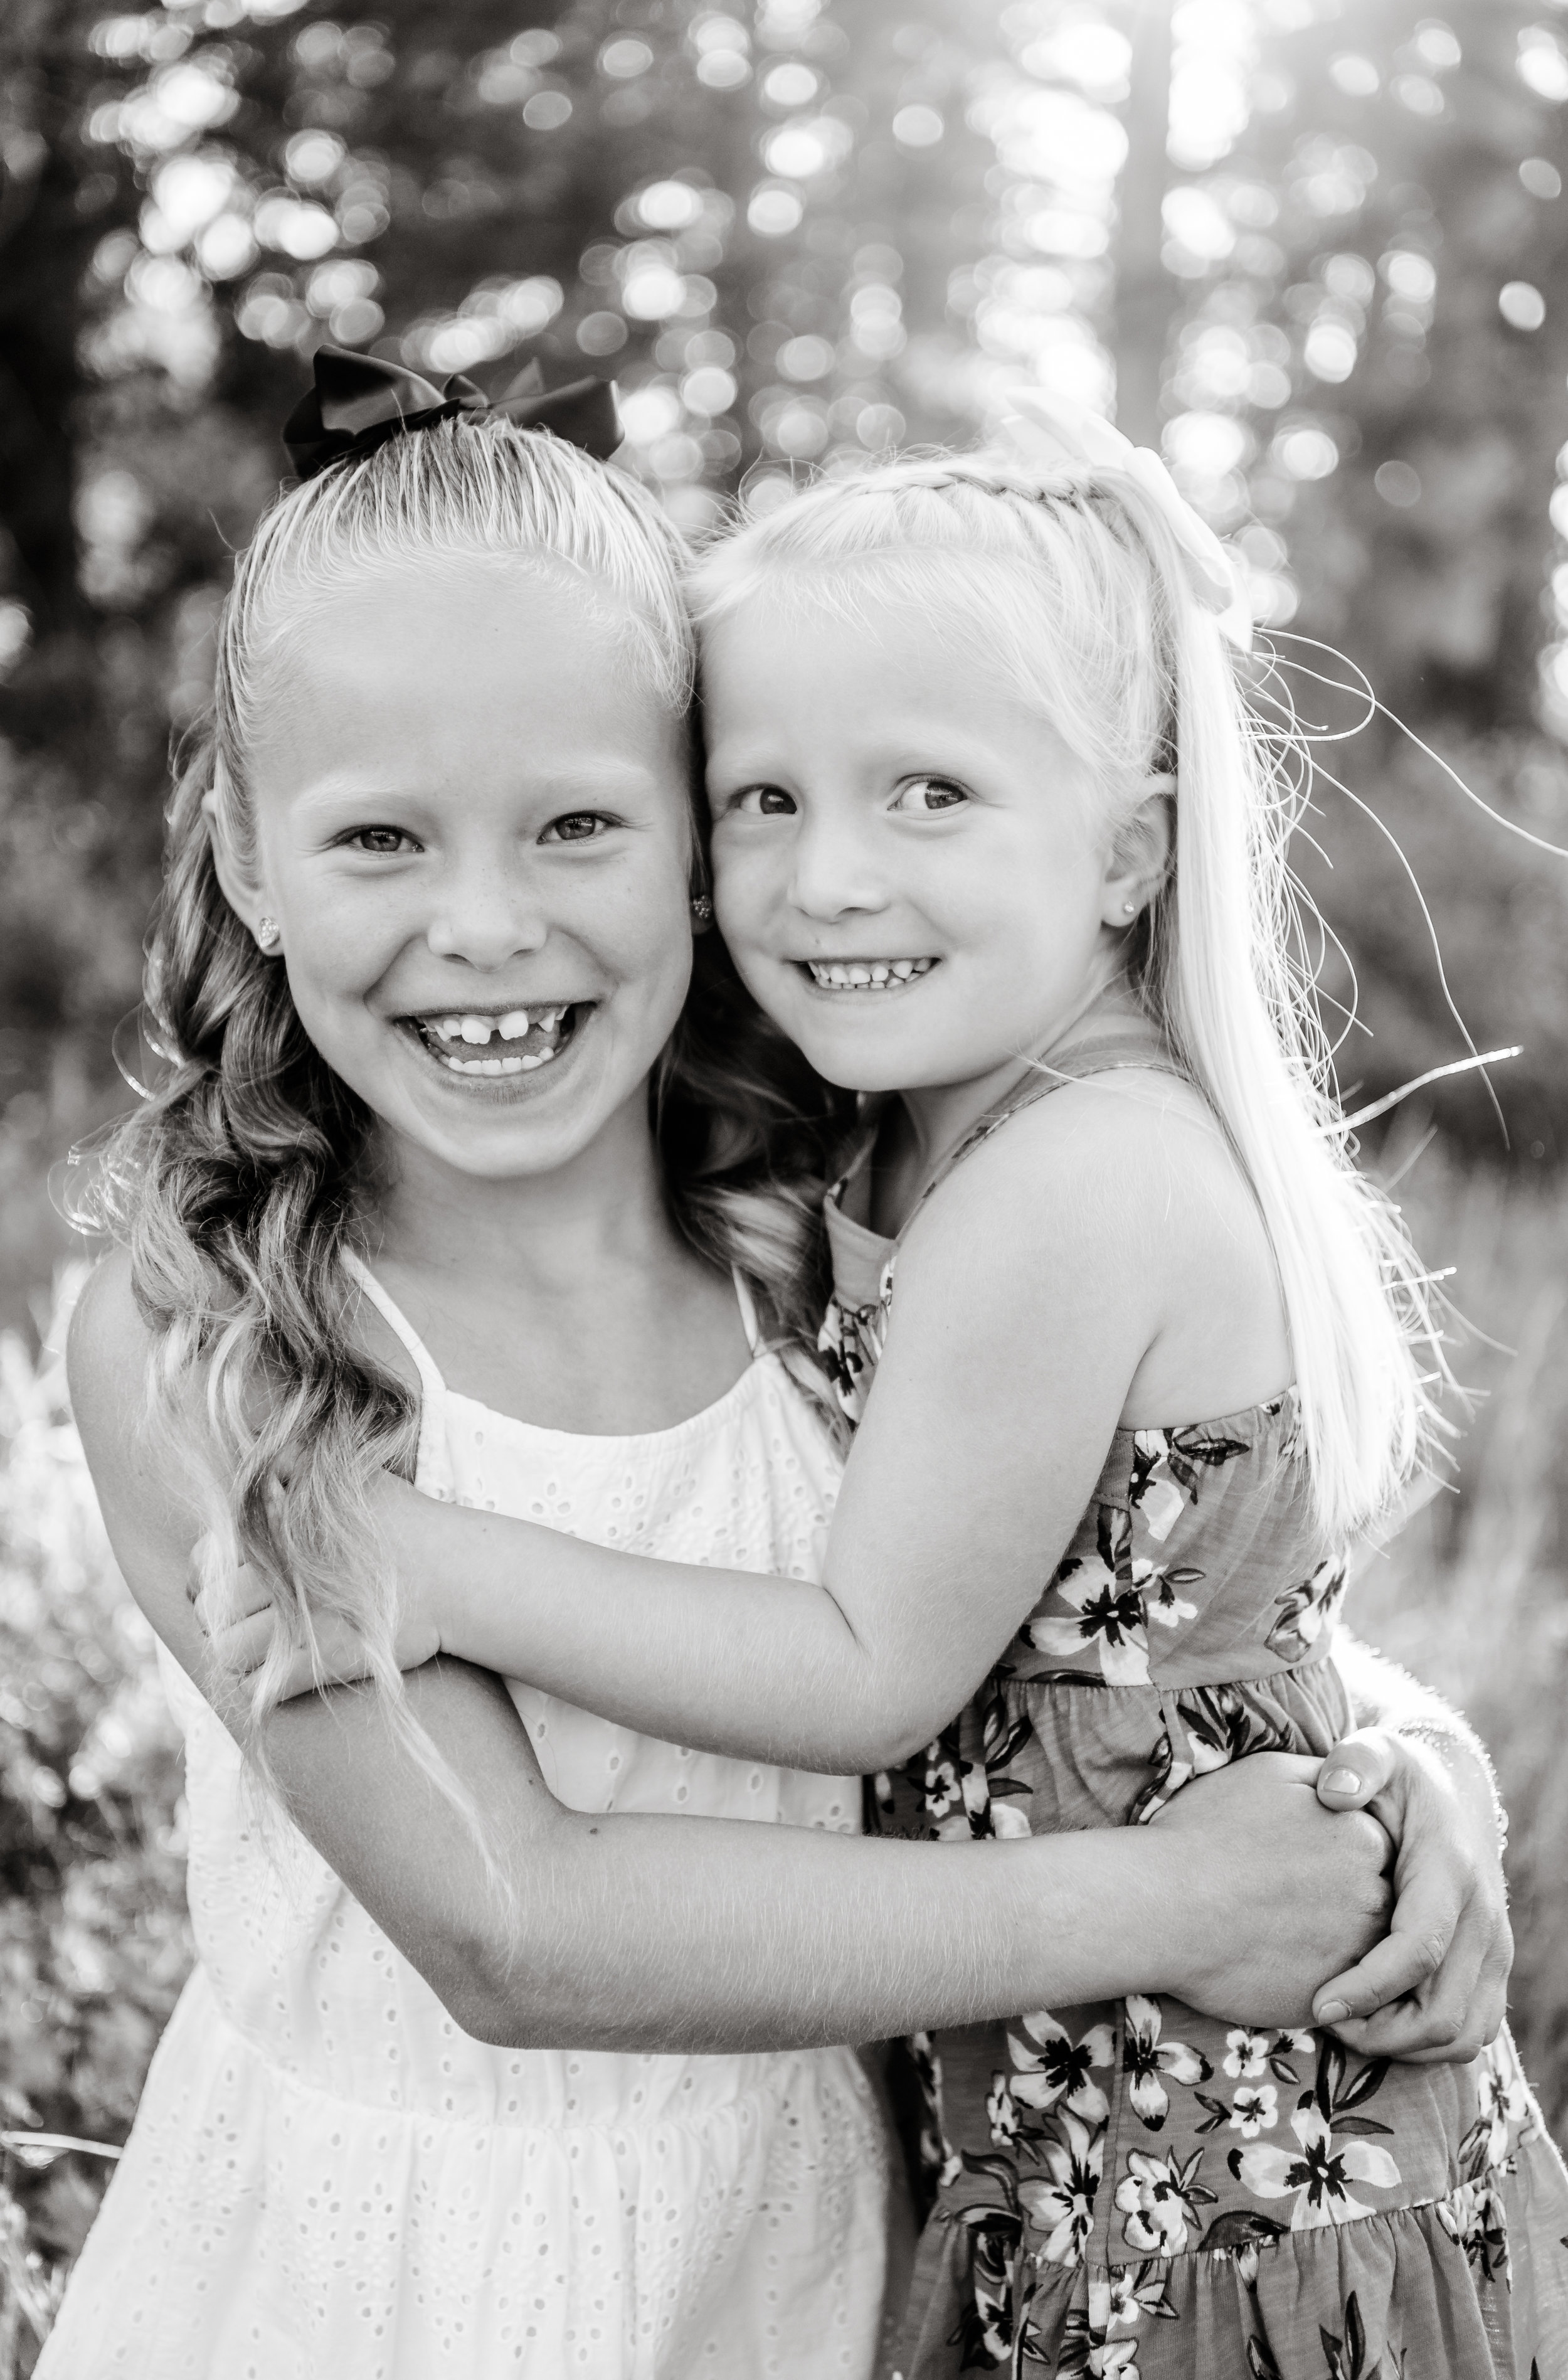 Sister's hugging during family pictures taken in Big Cottonwood Canyon in July.